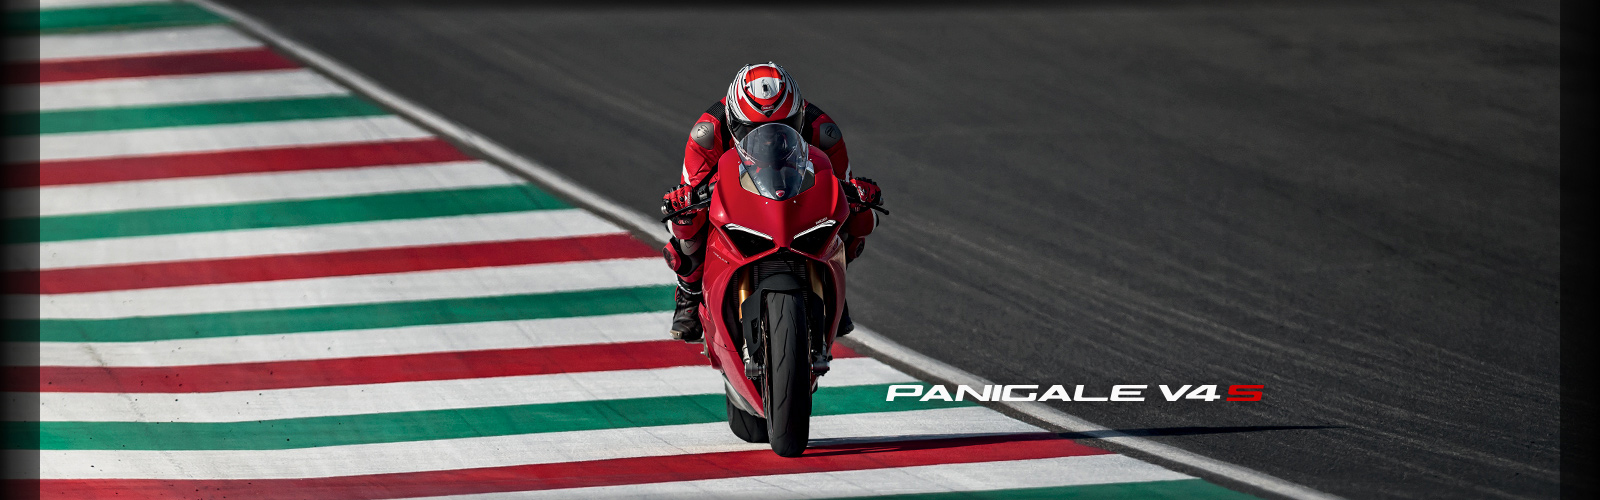 Panigale-V4_Red-LOGO_MY18_01_Cover-Hp_hex000000